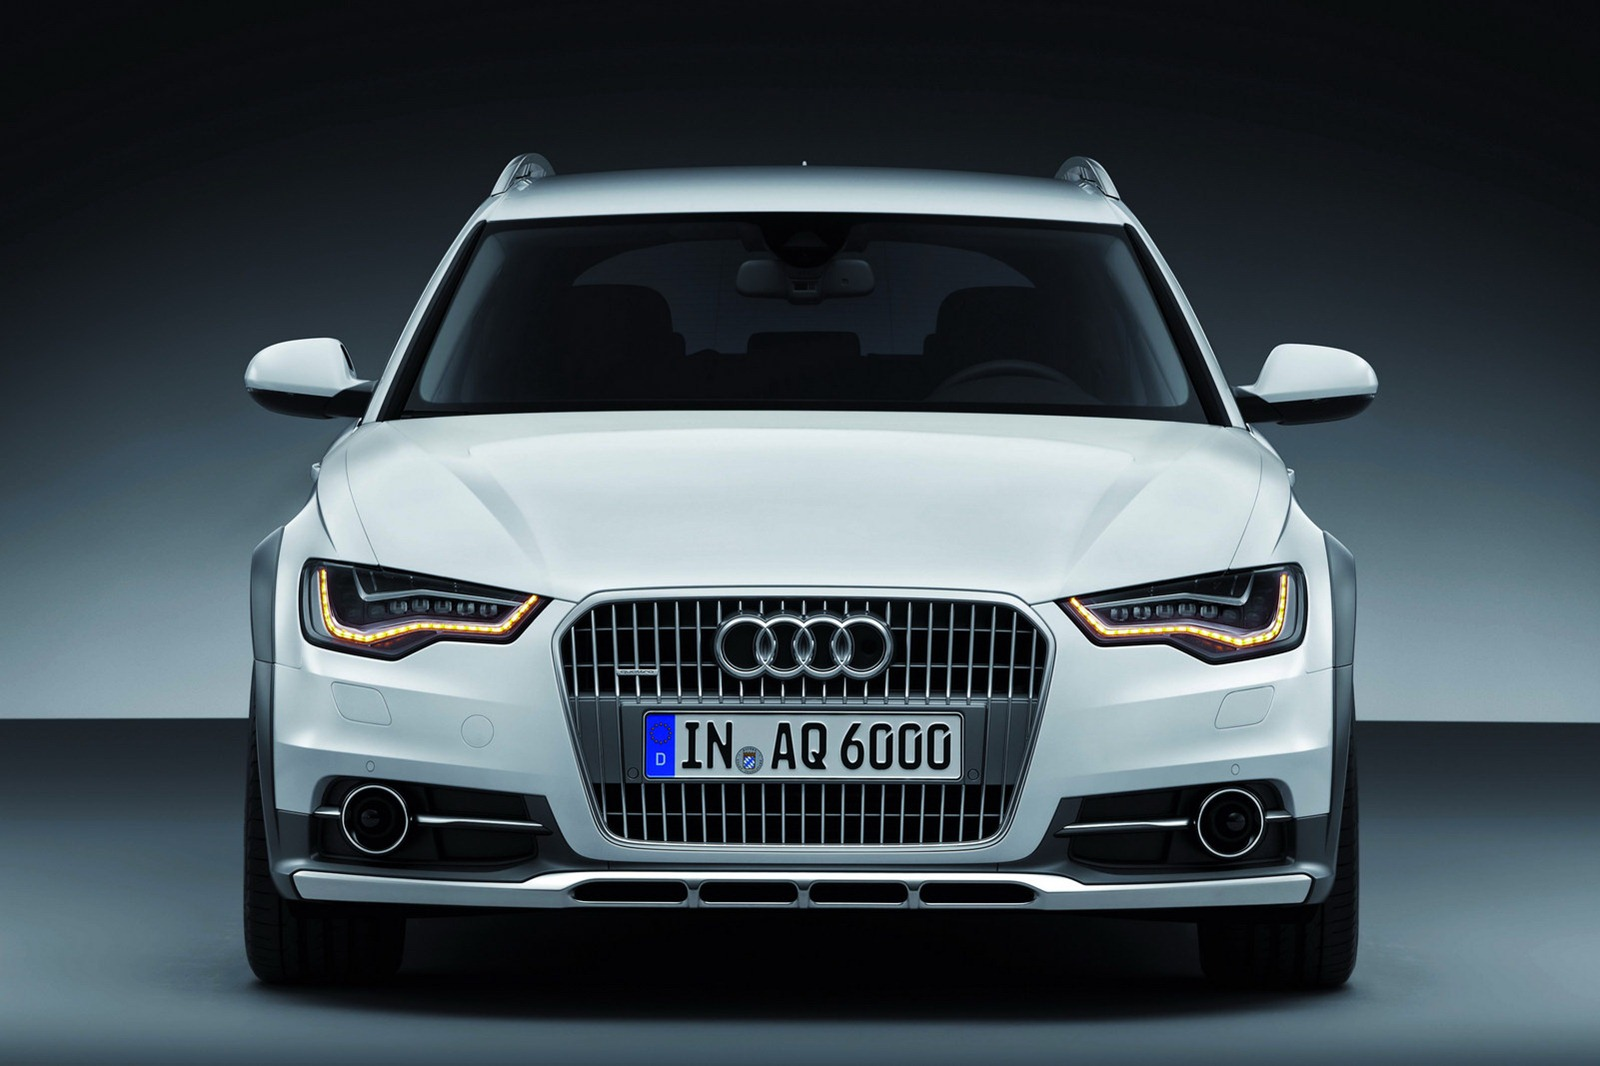 New 2013 Audi A6 Allroad Unveiled - autoevolution